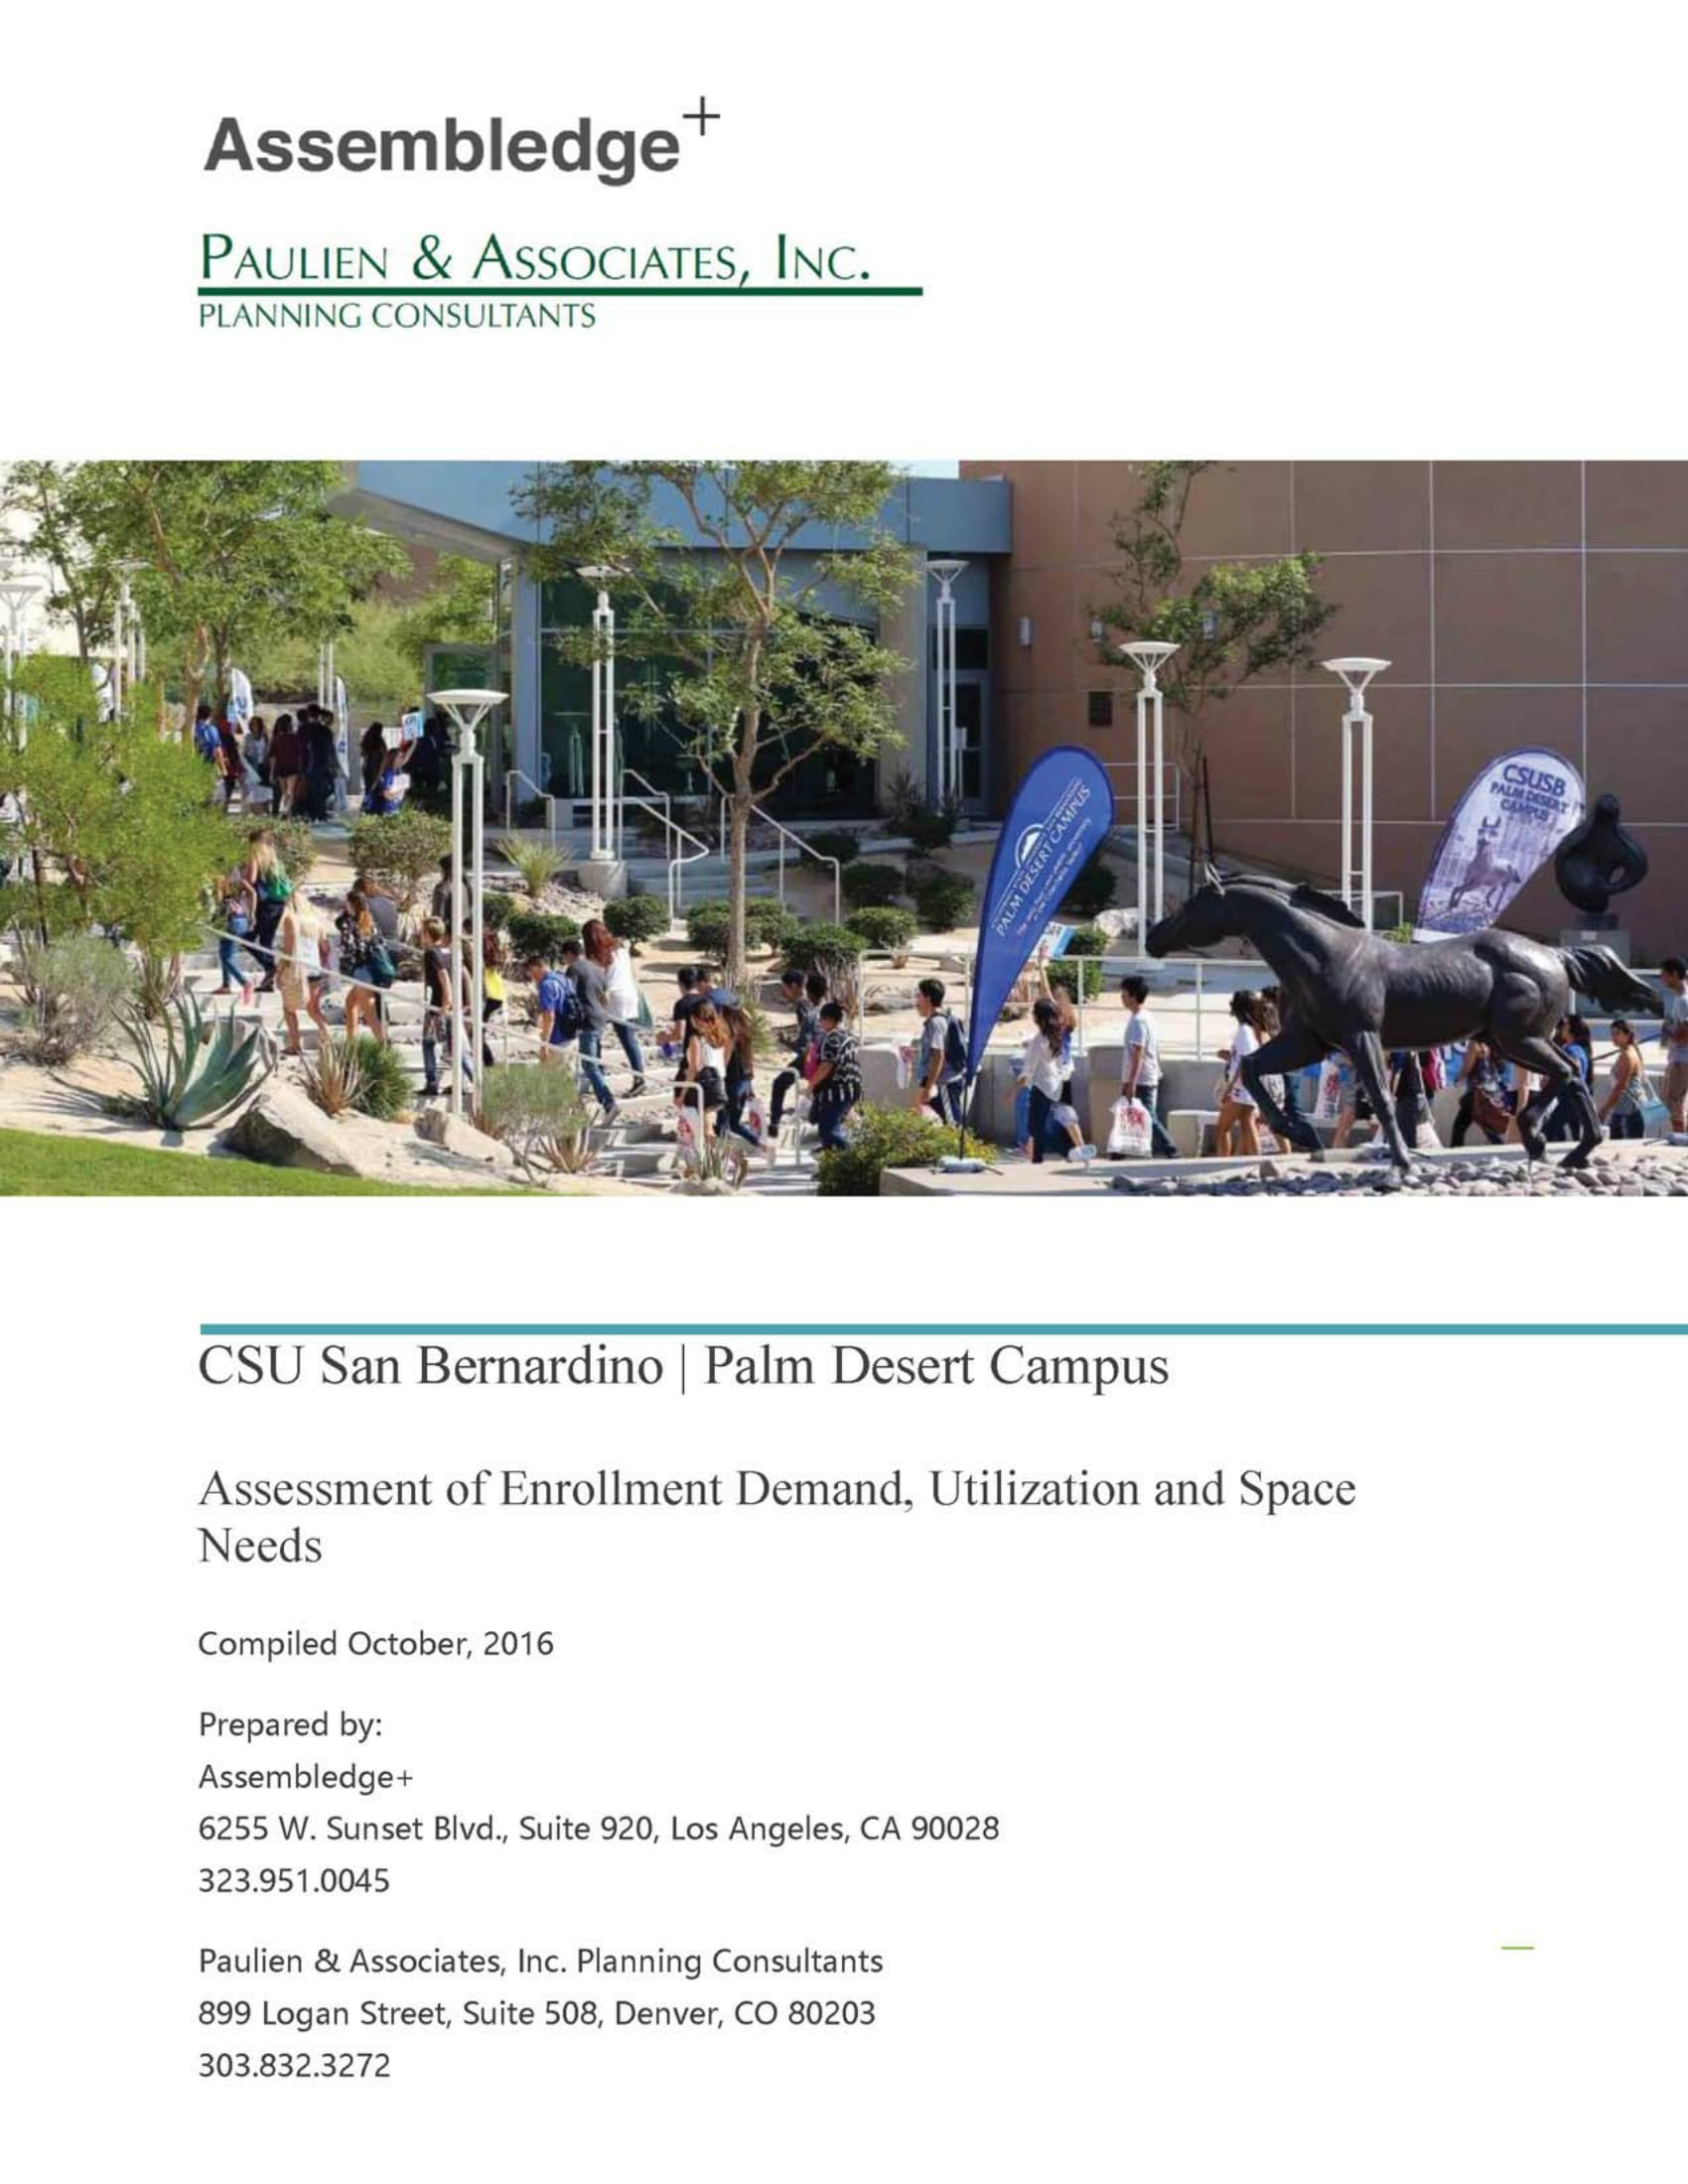 CSUSB PDC Enrollment Demand, Utilization and Space Needs